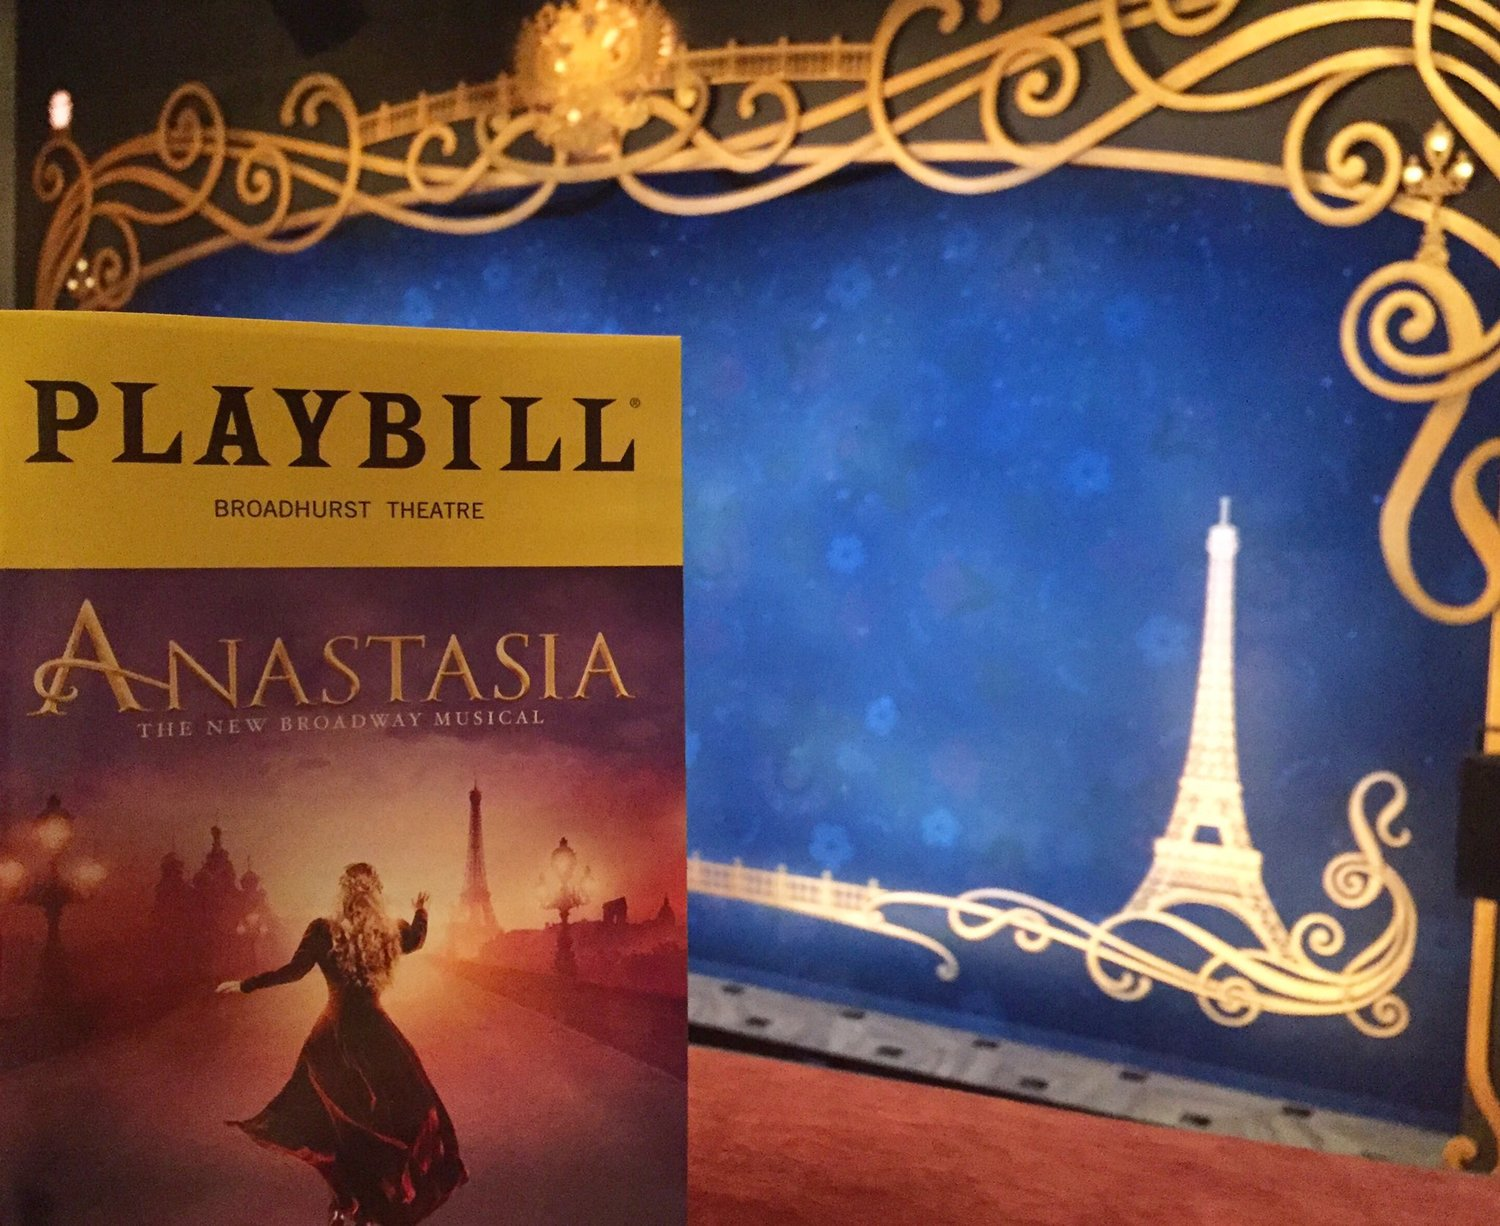 Anastasia on Broadway, Opera Box and show portal fabrication.